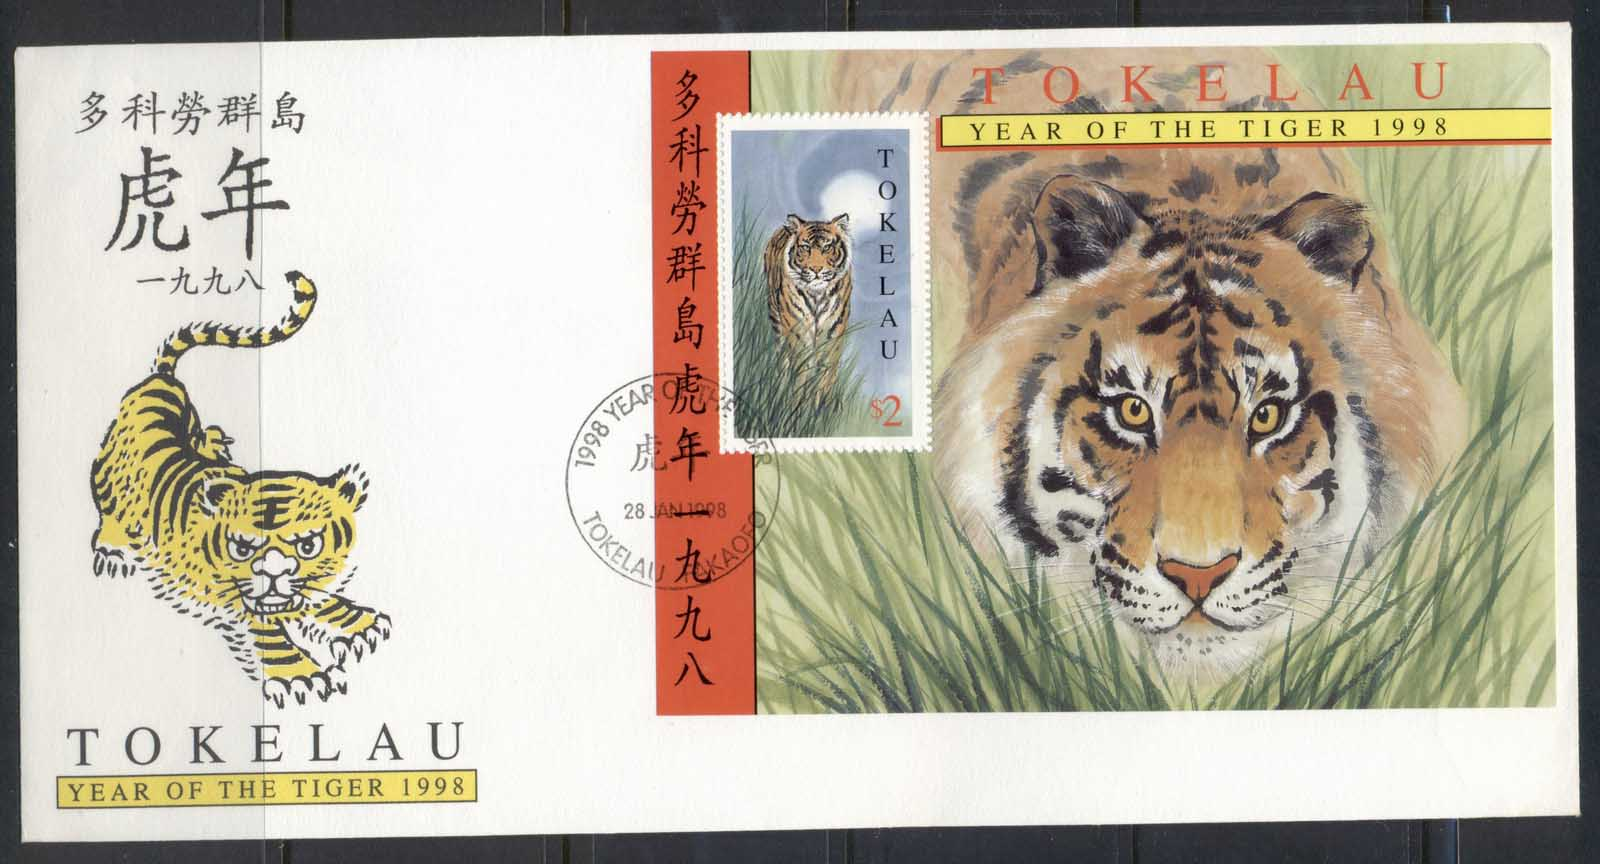 Tokelau 1998 Year of the Tiger MS FDC